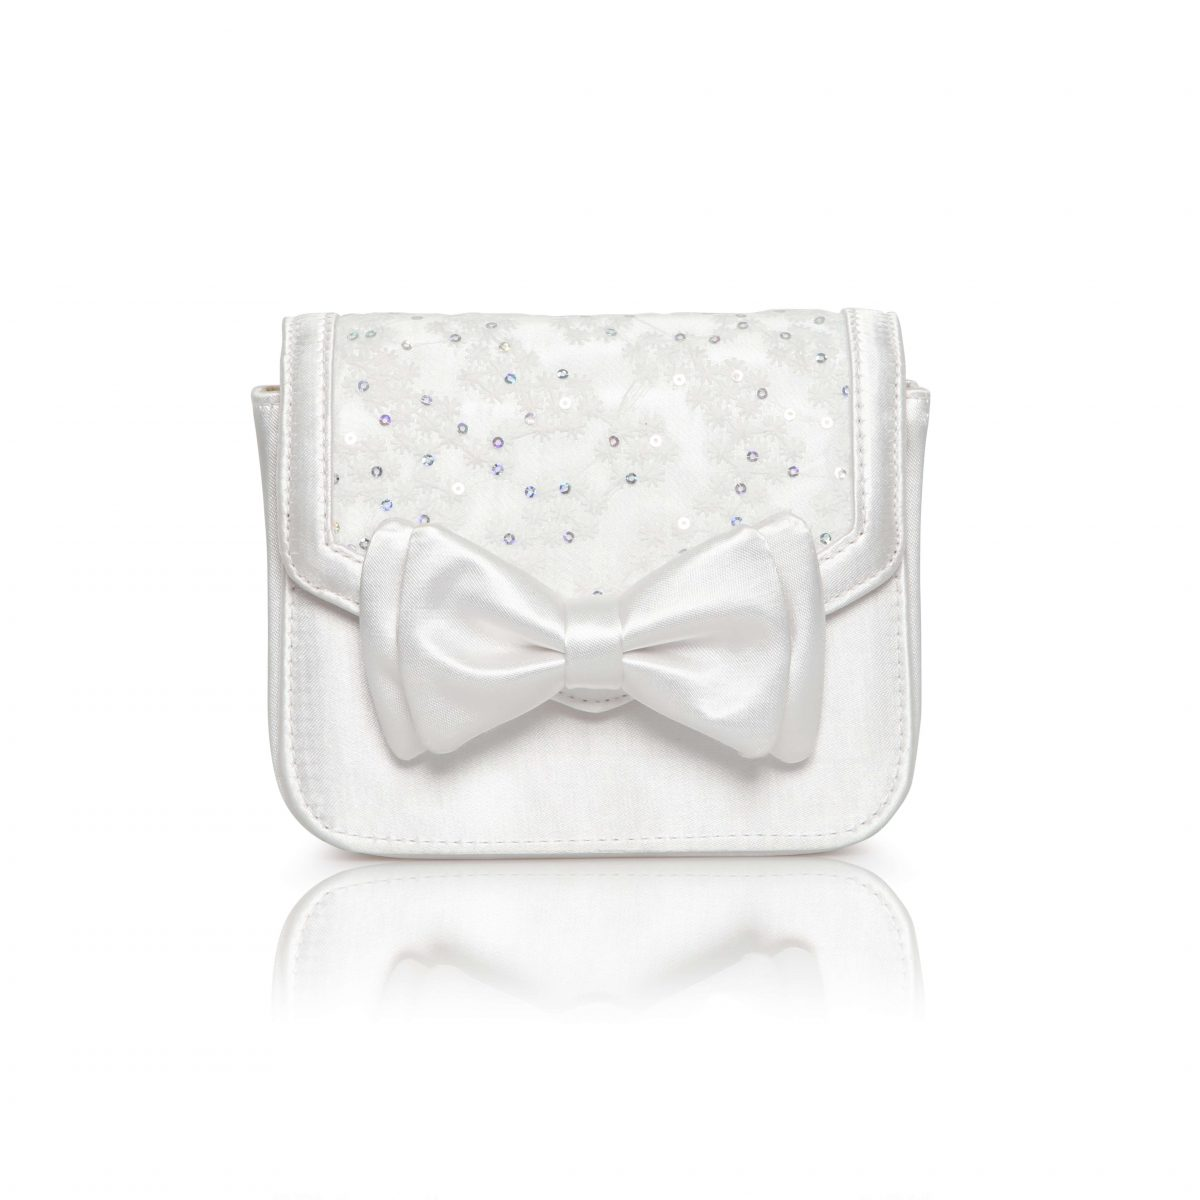 Perfect Bridal Pepper Bridal Bag - Ivory Dyeable Satin/Lace 1